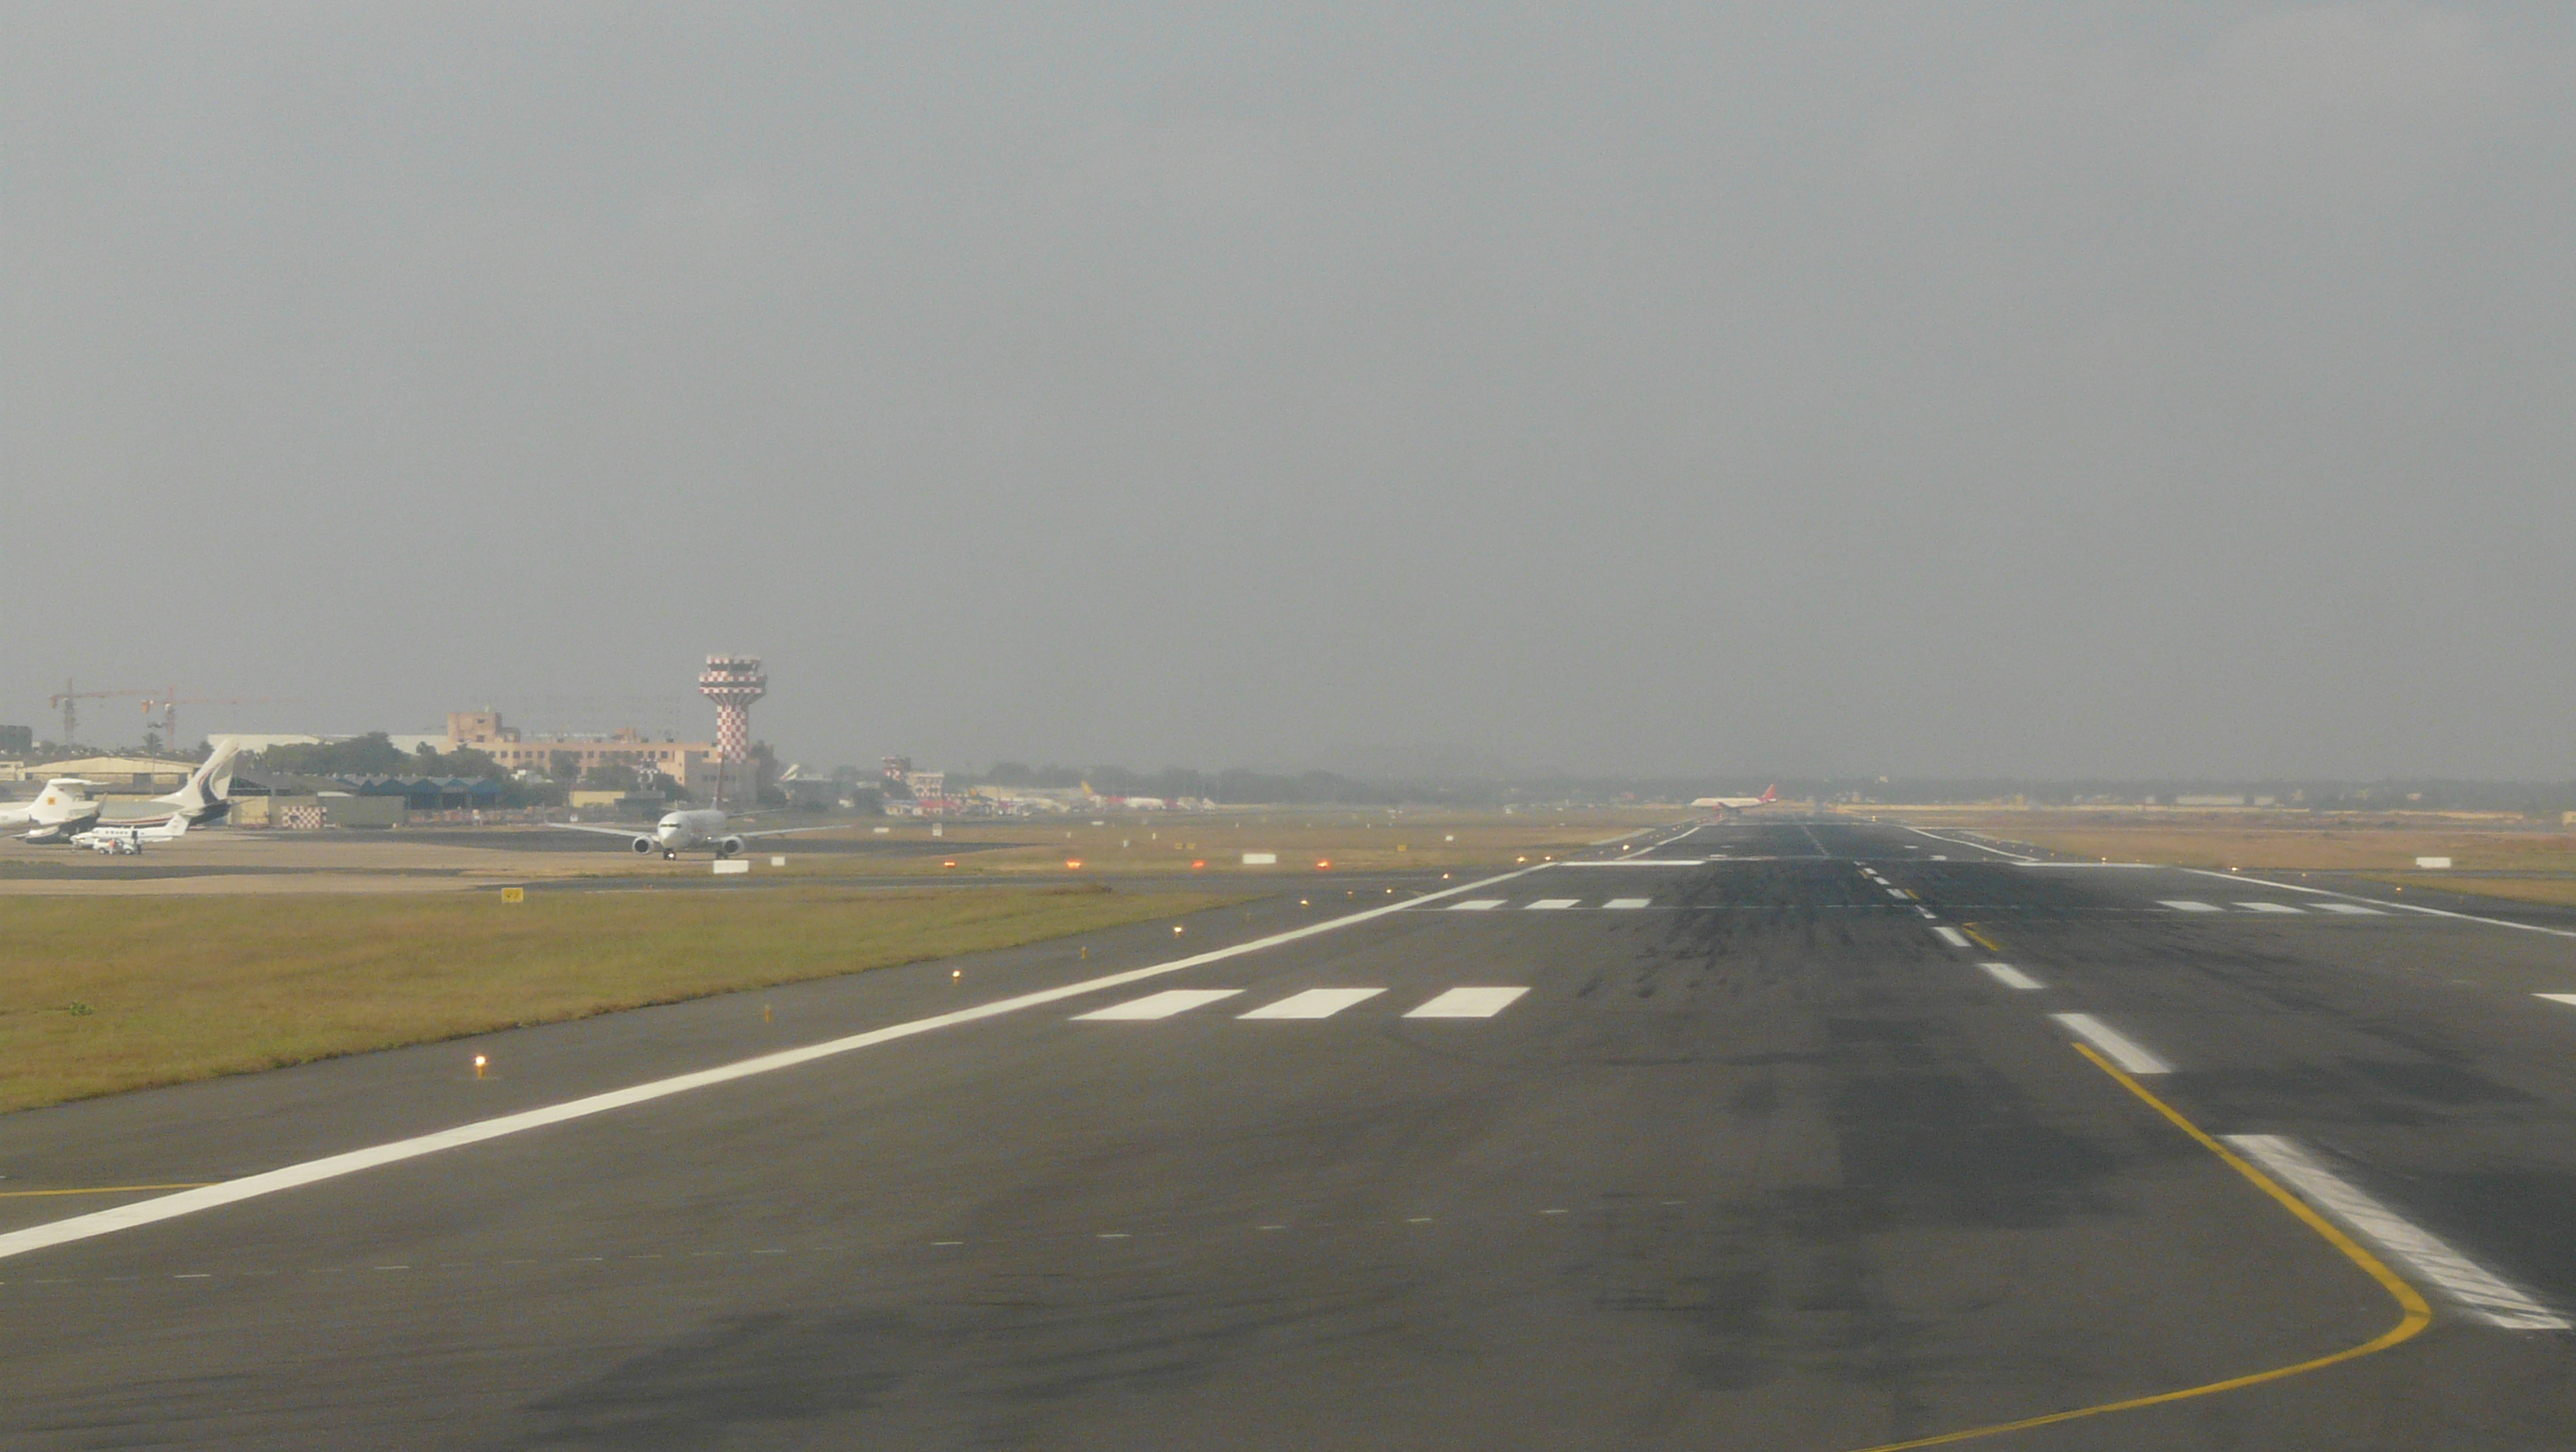 AAI decides to use plastic waste to lay or repair roads inside the airport